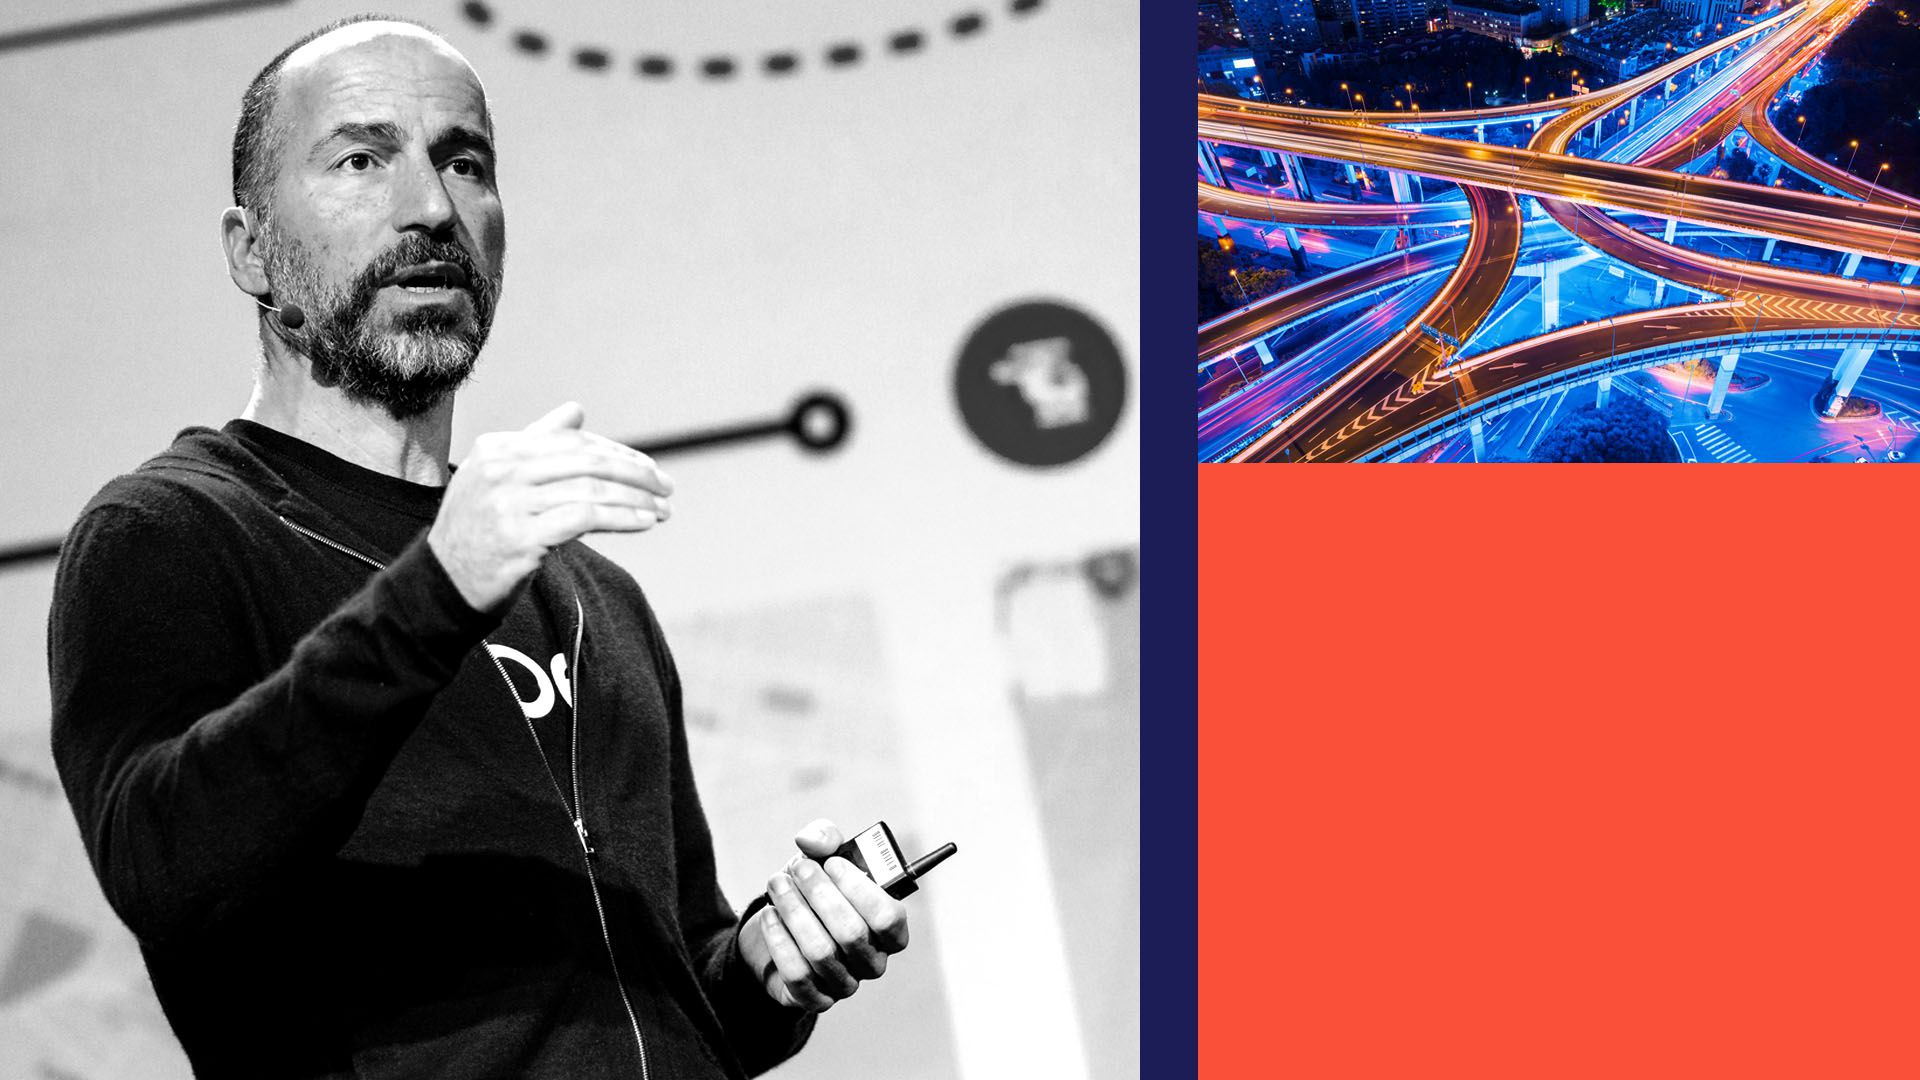 Photo illustration of Uber CEO Dara Khosrowshahi with an image of a highway and blocks of color.